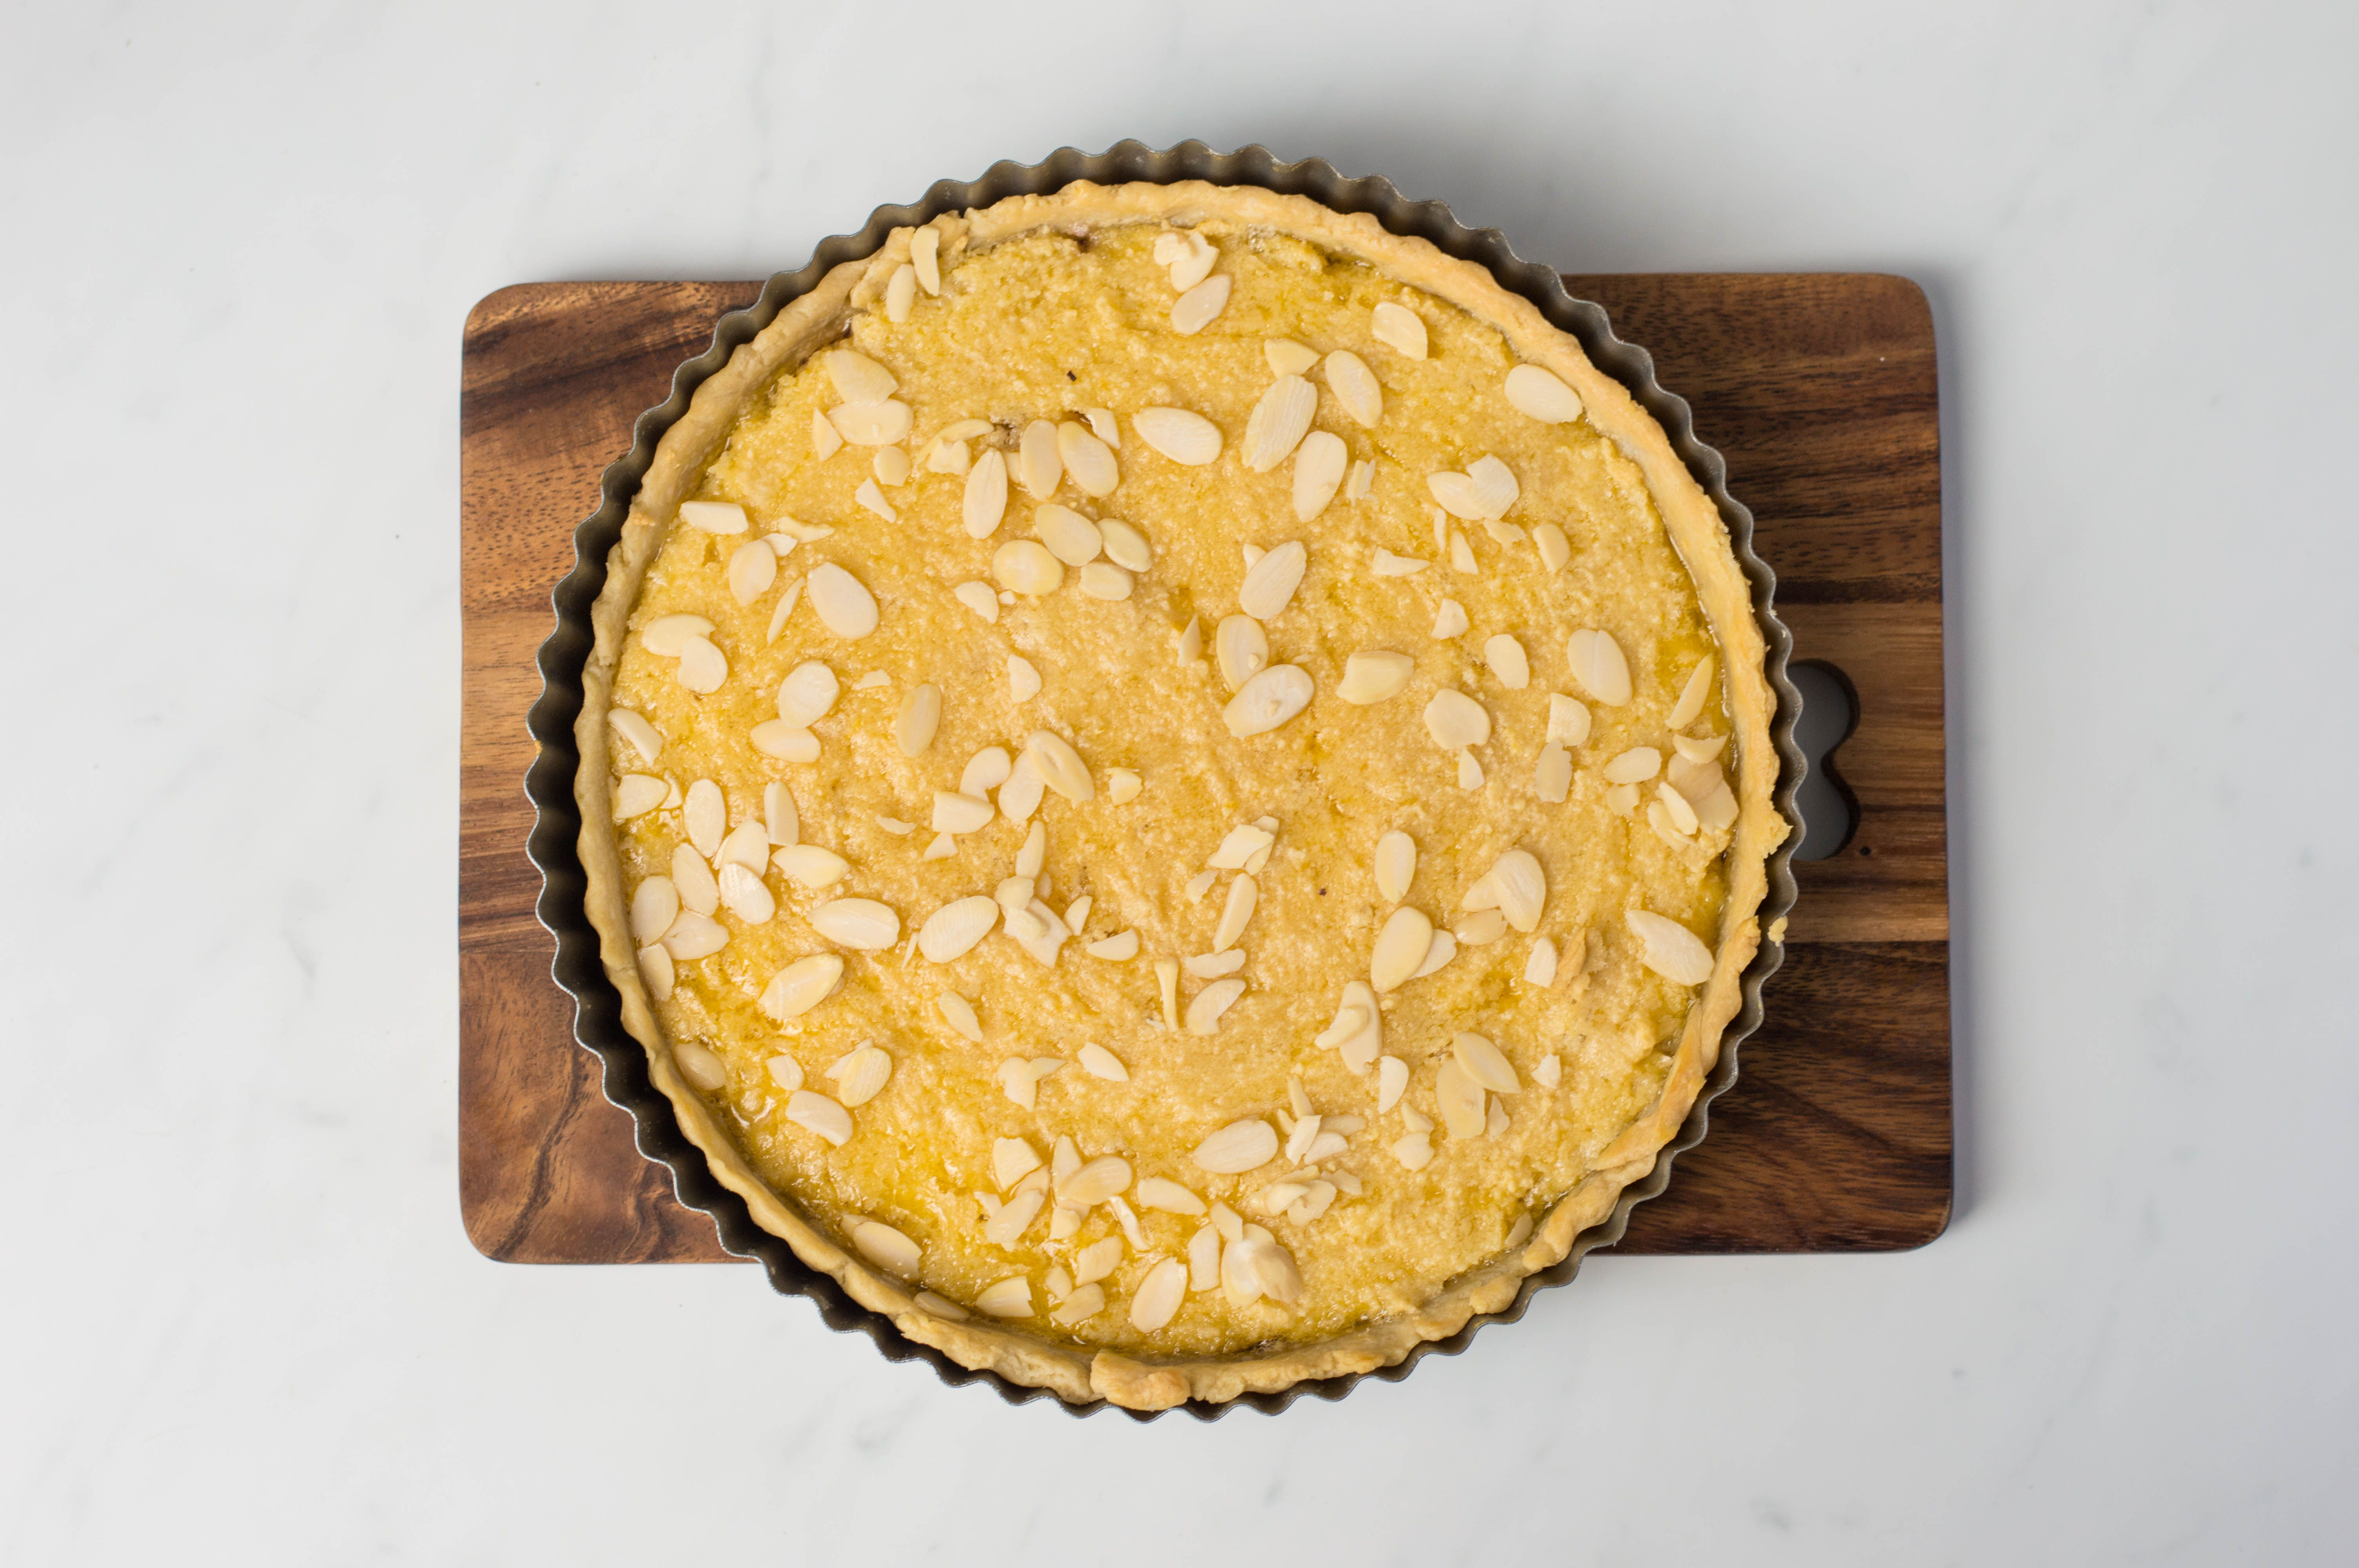 Tart sprinkled with flaked almonds on wooden board